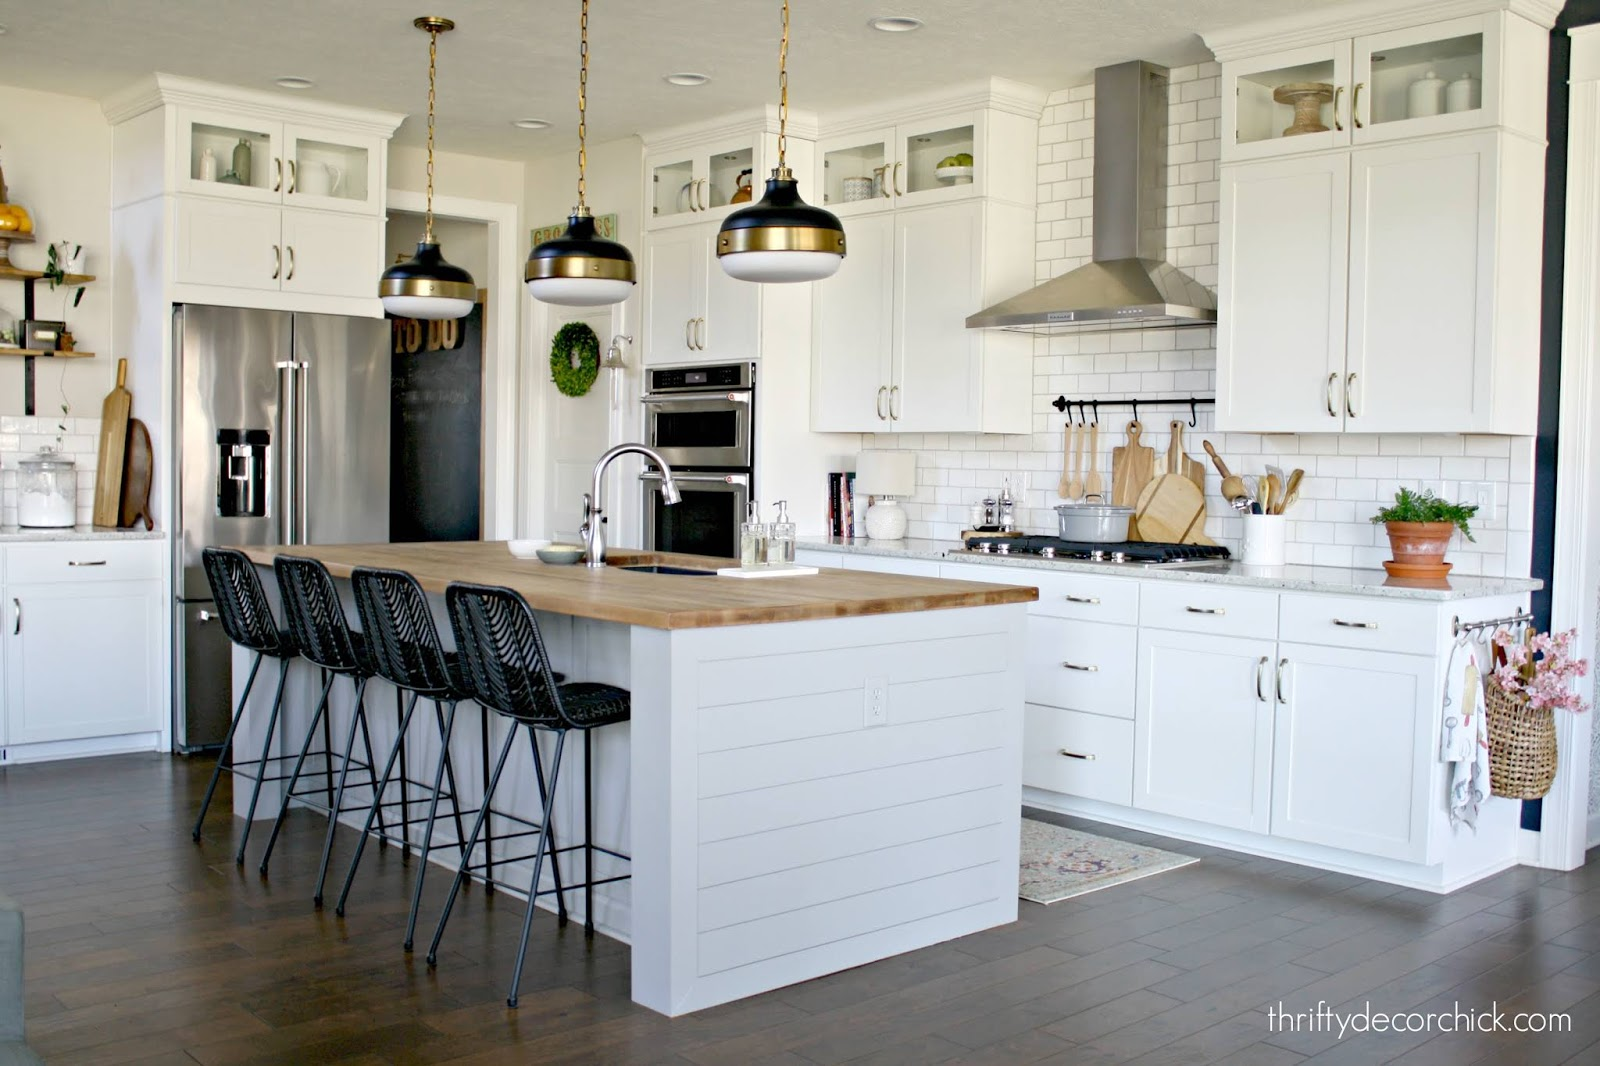 Customizing kitchen island with side panels and legs